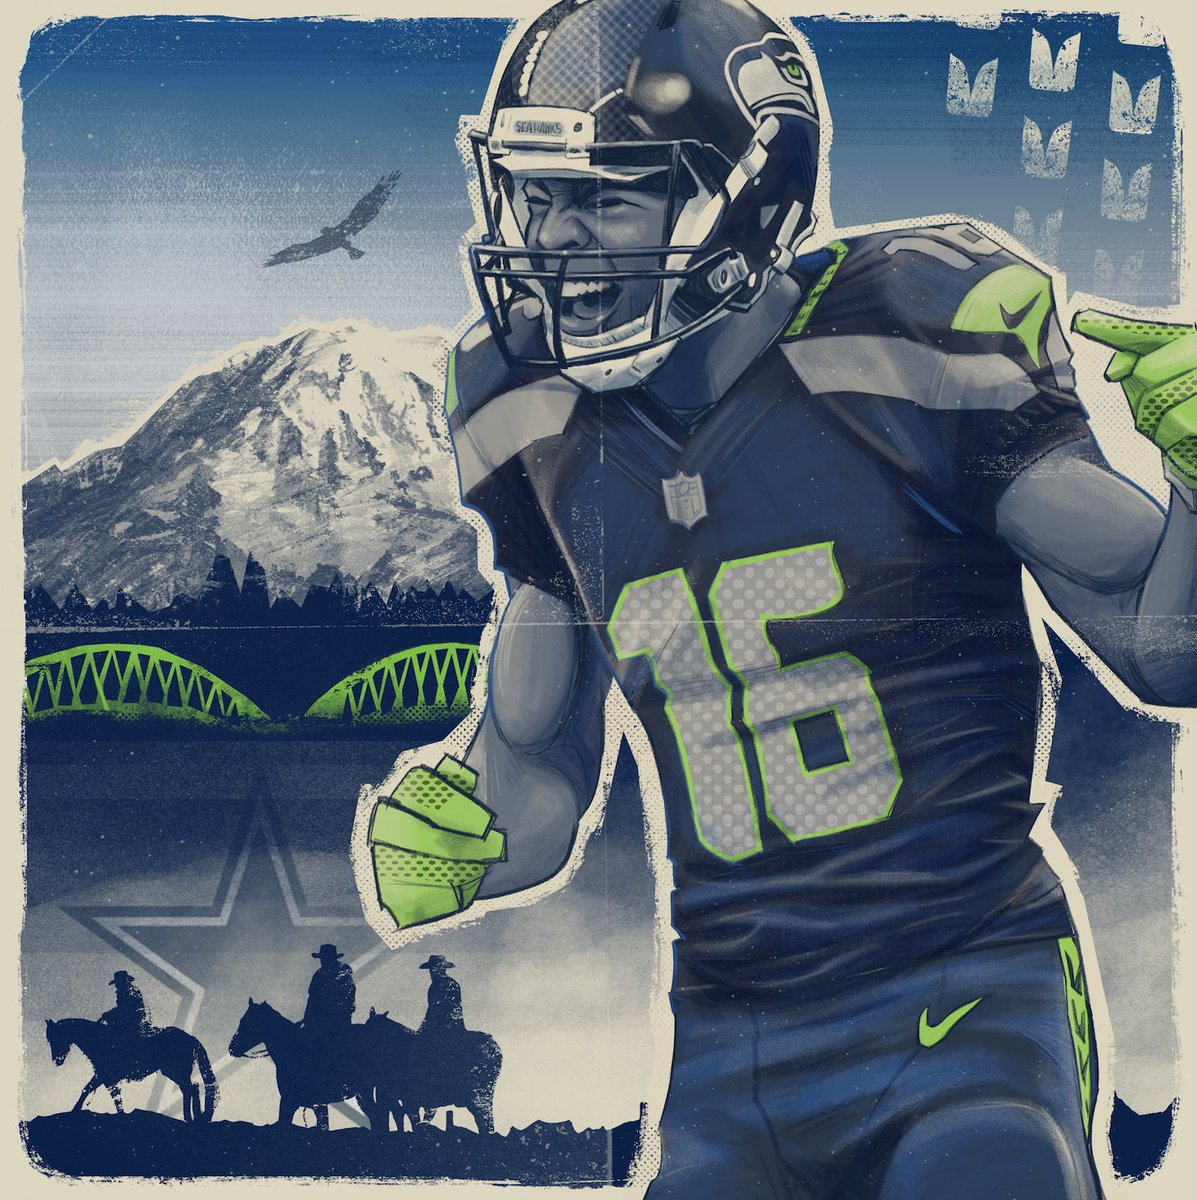 THAT'S THE GAME!   Your #Seahawks are 3-0! https://t.co/FQ2c66HyrQ